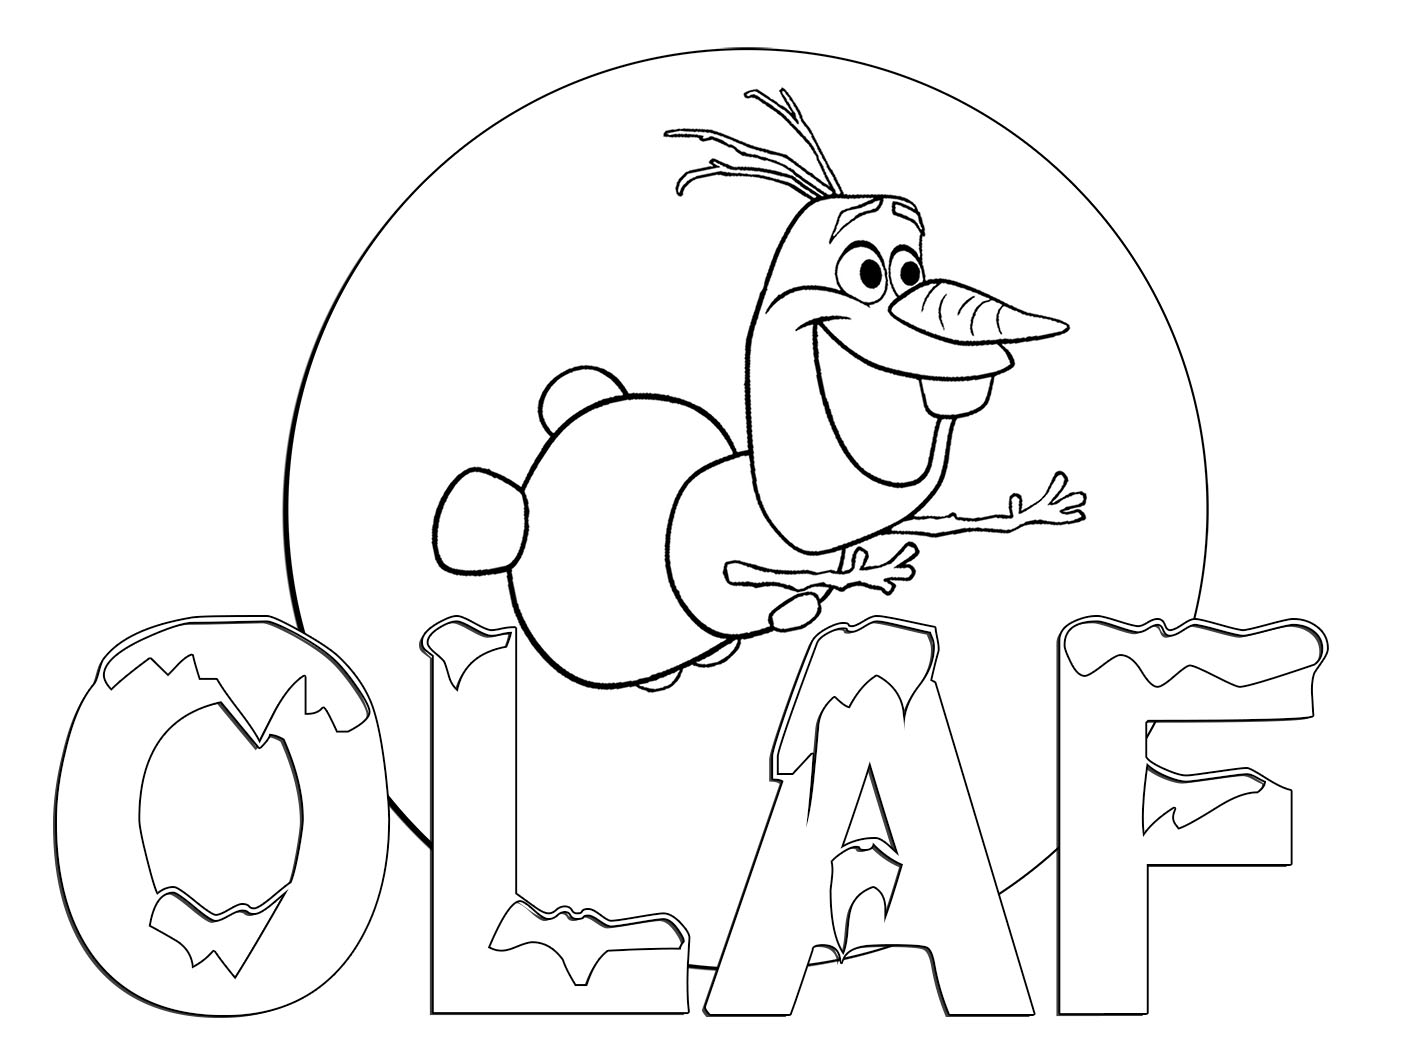 This is a picture of Mesmerizing Printable Coloring Pages for Toddlers